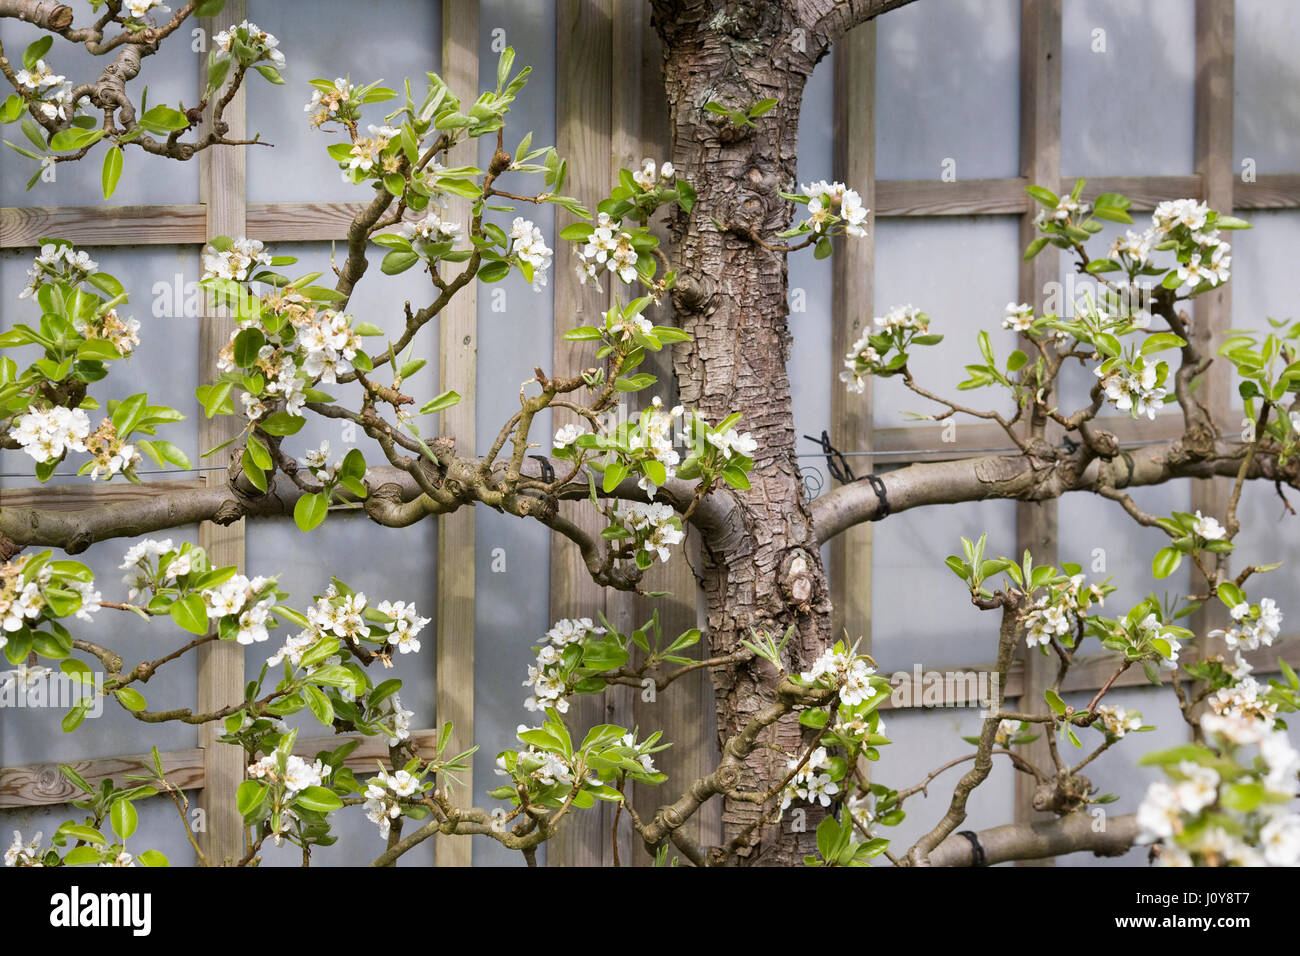 espalier stockfotos espalier bilder alamy. Black Bedroom Furniture Sets. Home Design Ideas